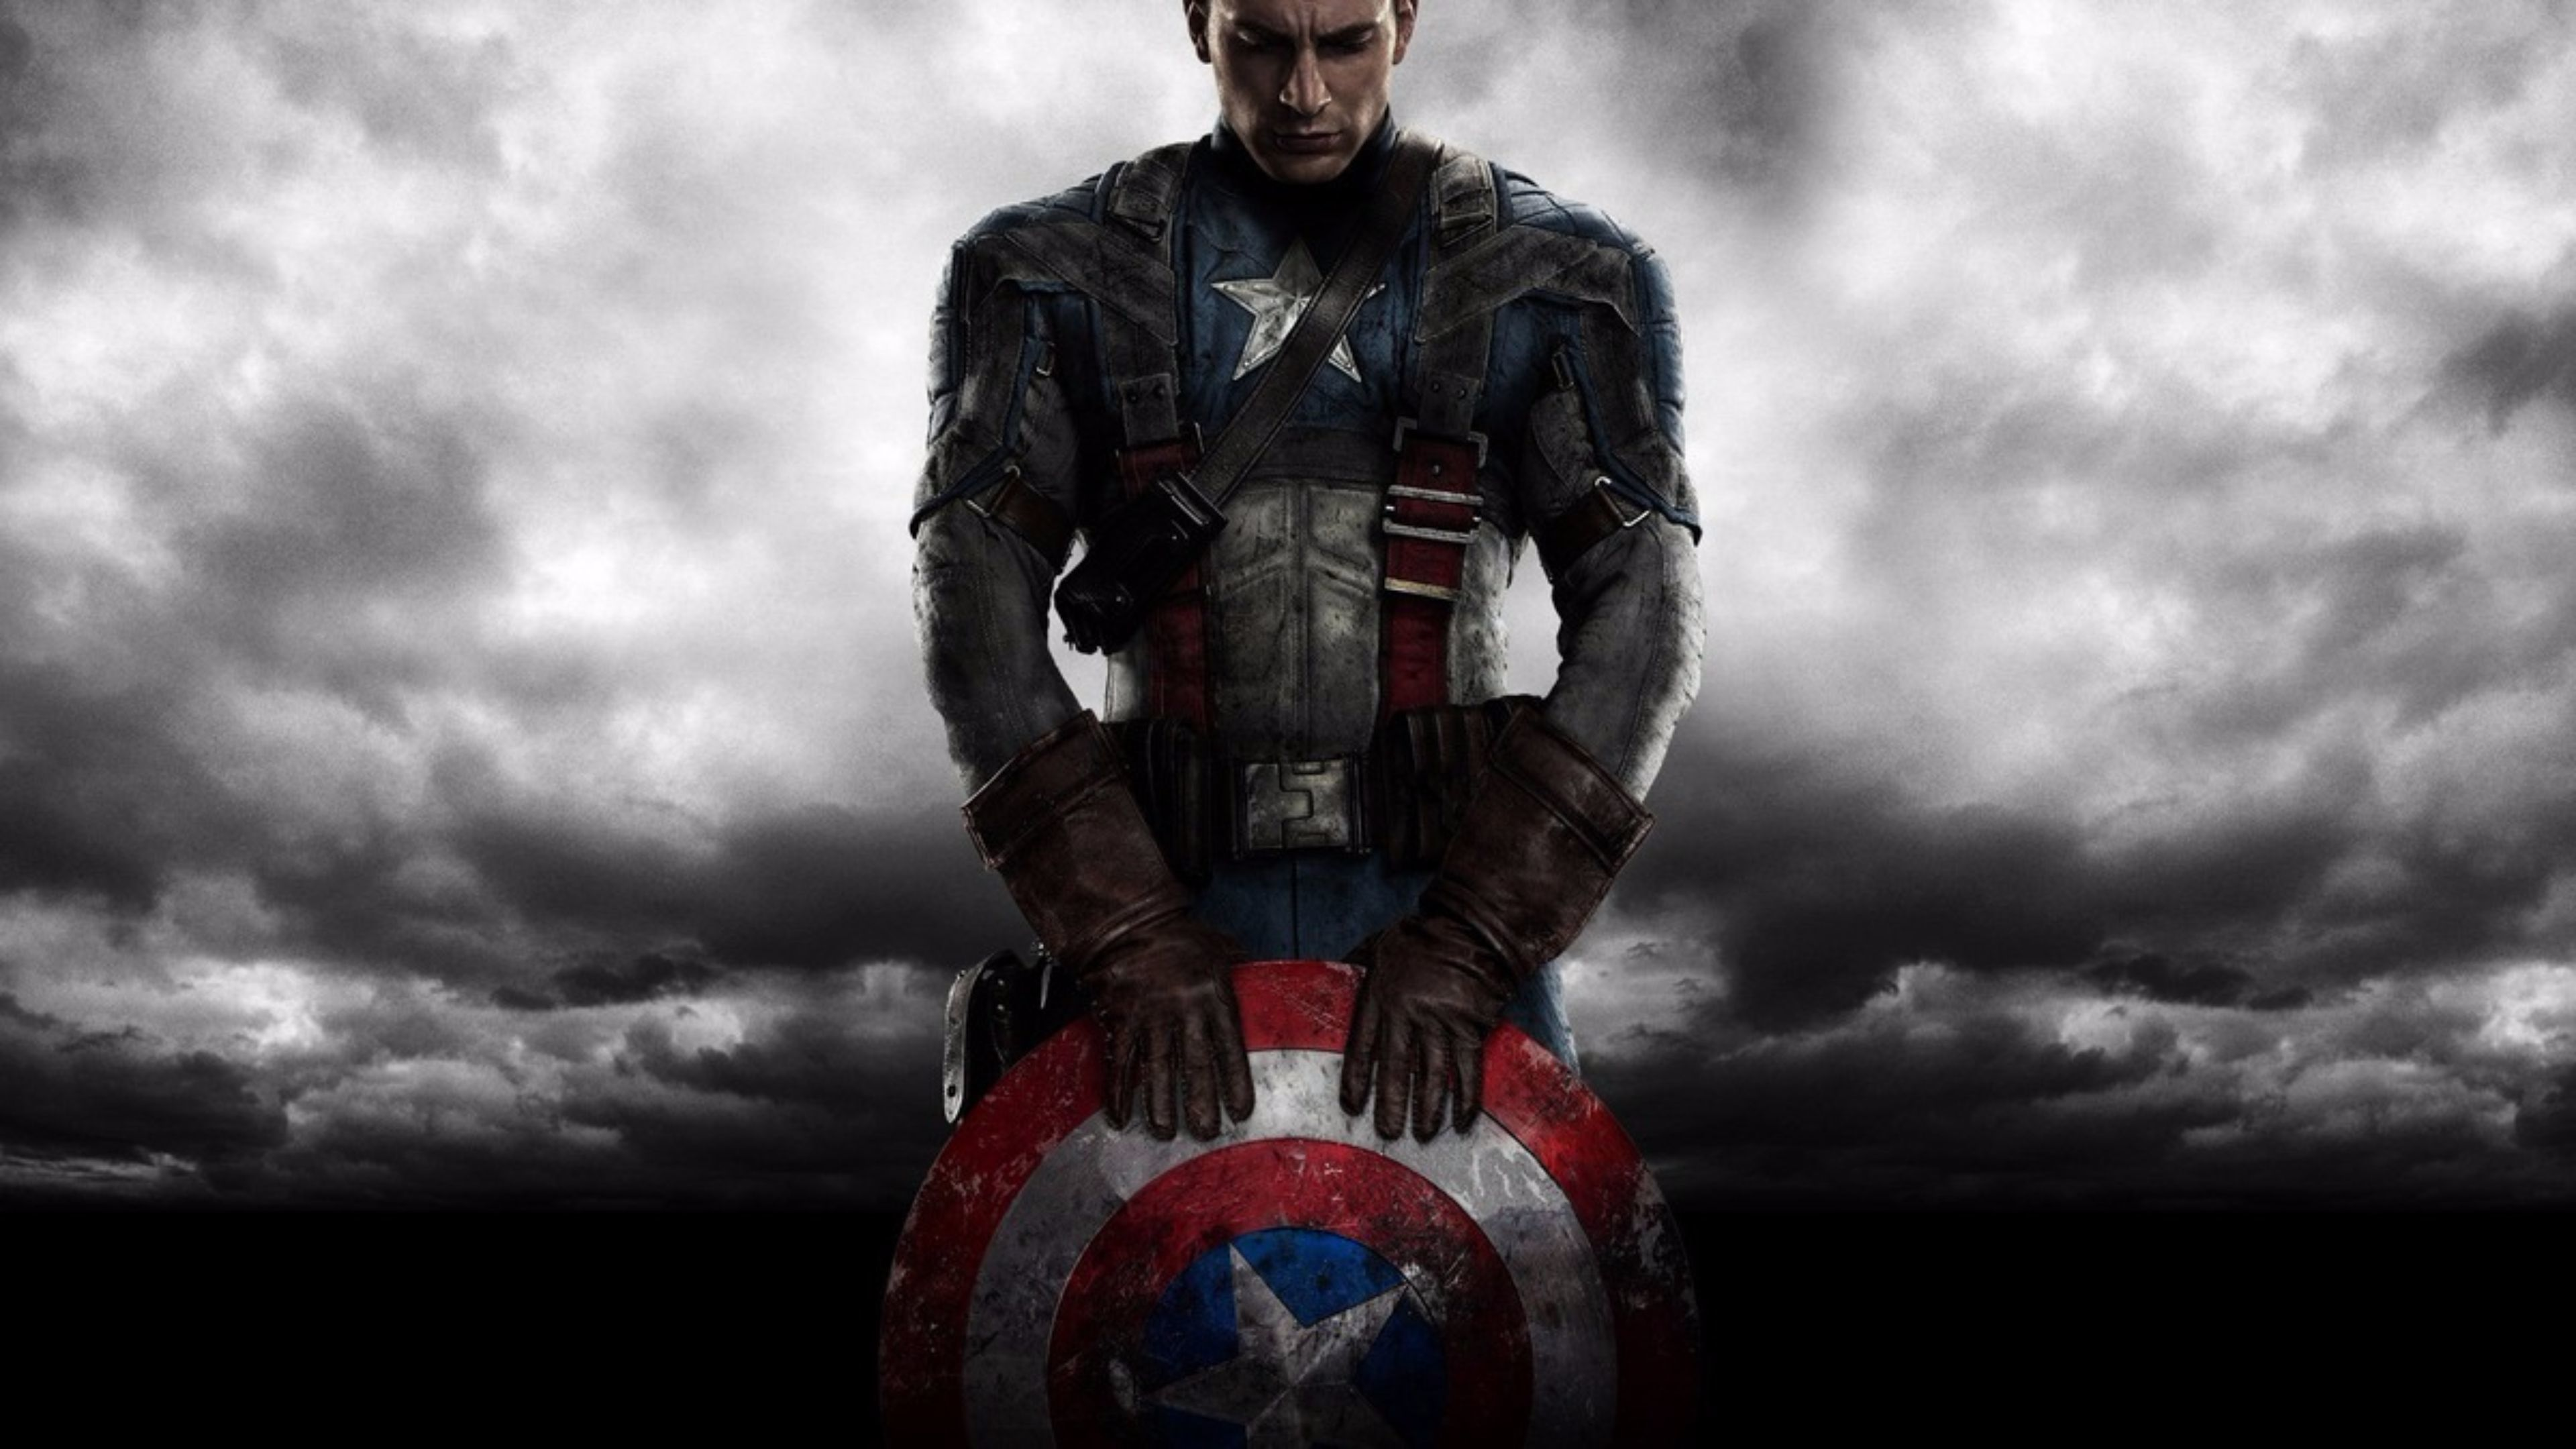 marvel will deny it but civil war supports iron man and government oversight inverse